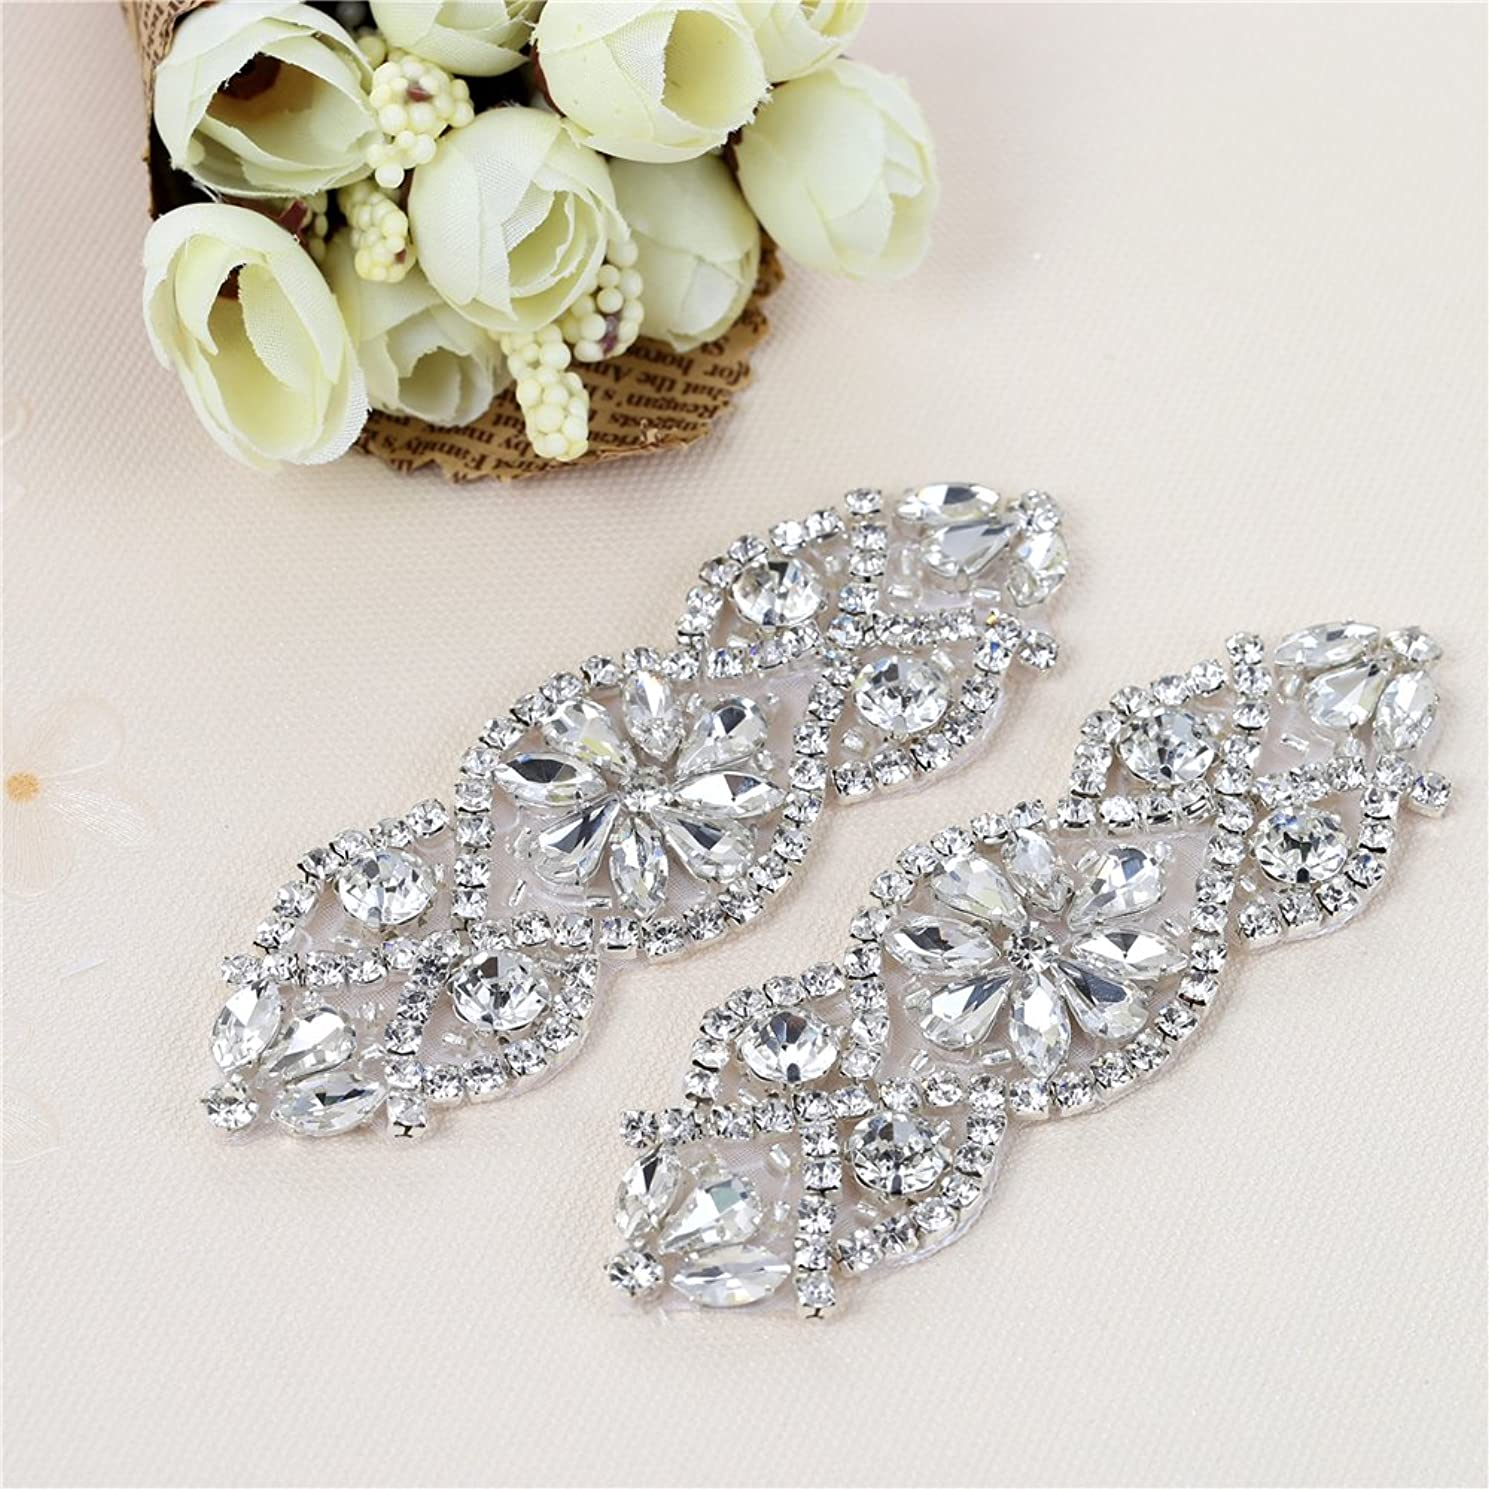 XINFANGXIU (2PCS) Bridal Wedding Dress Sash Belt Applique with Crystals Rhinestones Beaded Dacorations Handcrafted Sparkle Elegant Thin Sewn or Hot Fix for Women Gown Evening Prom Clothes - Silver